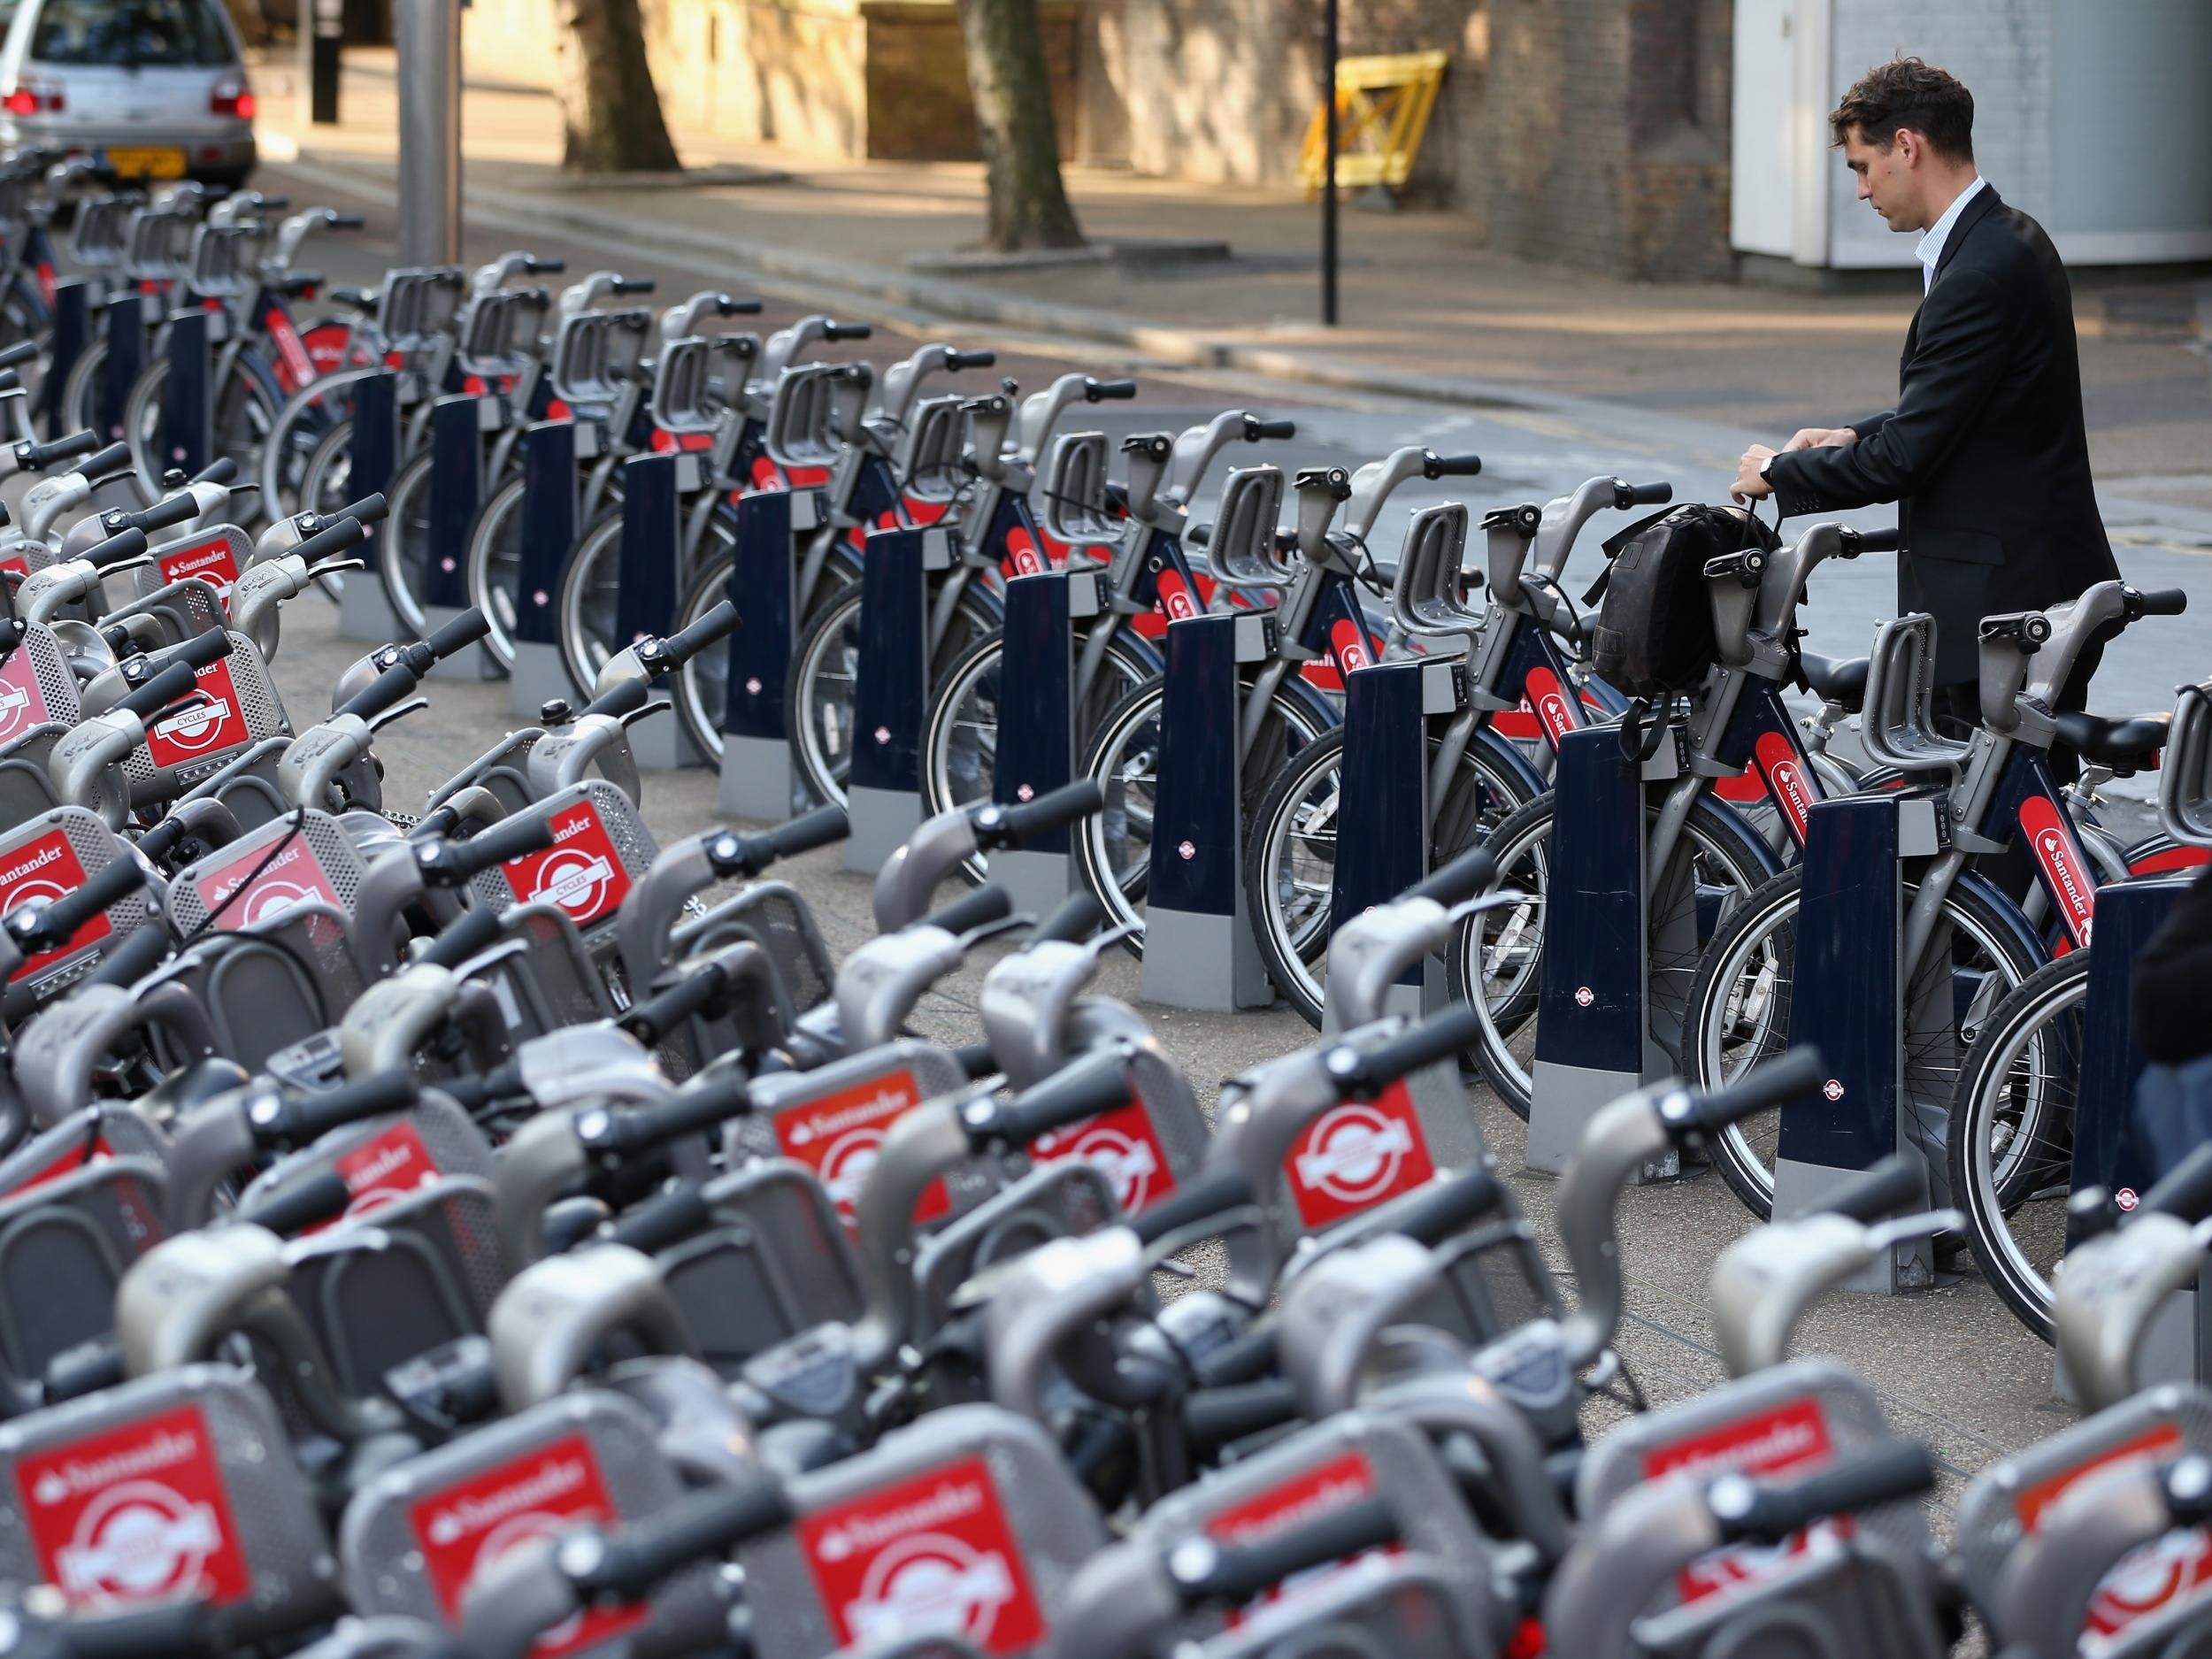 Get Free Cycle Hire In London This Weekend To Celebrate Six Years